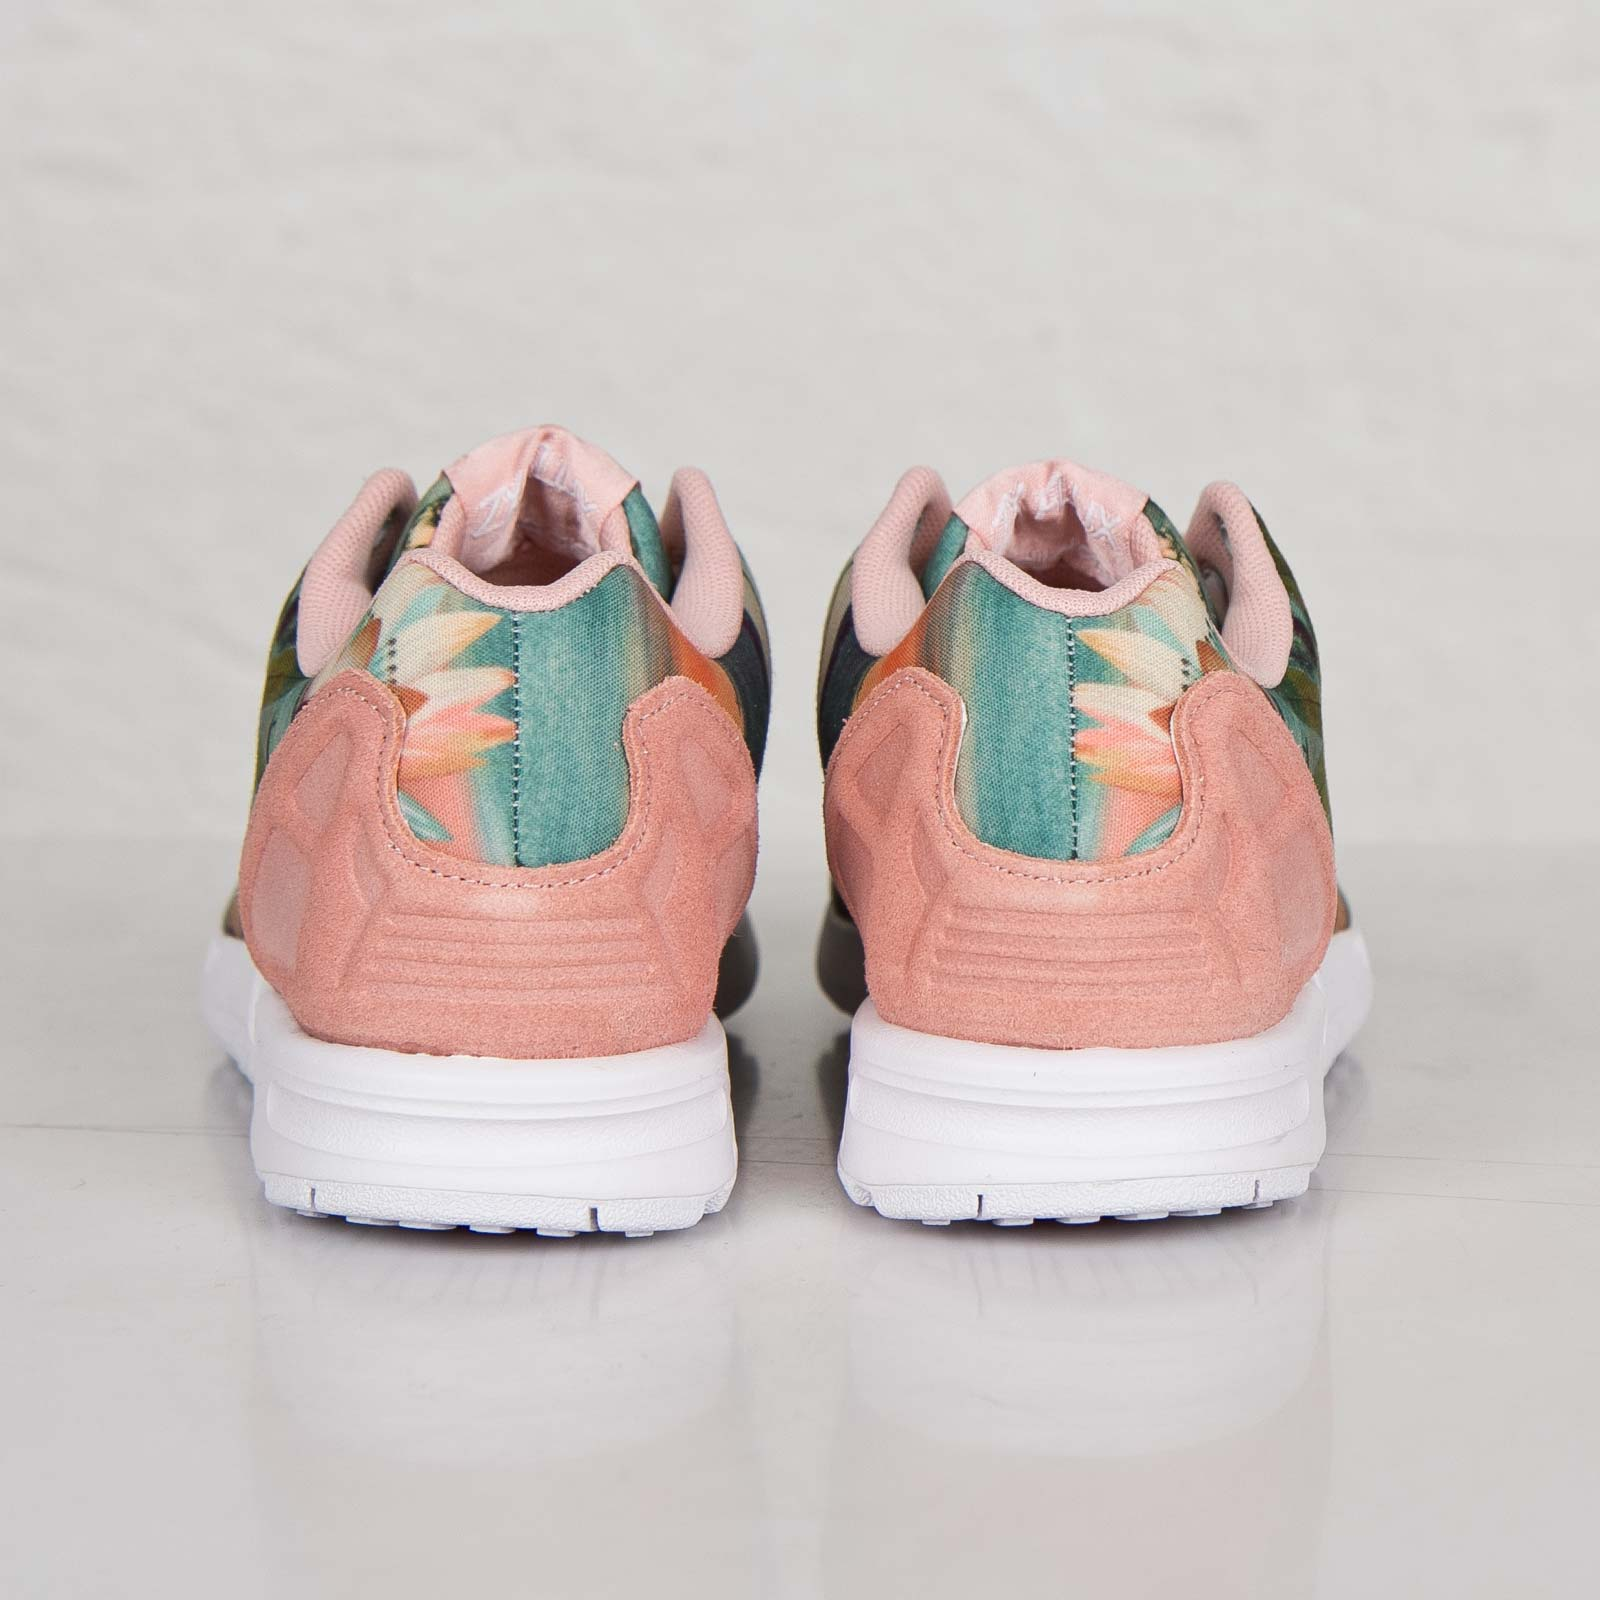 latest design speical offer skate shoes adidas ZX Flux W - B25483 - Sneakersnstuff I Sneakers ...